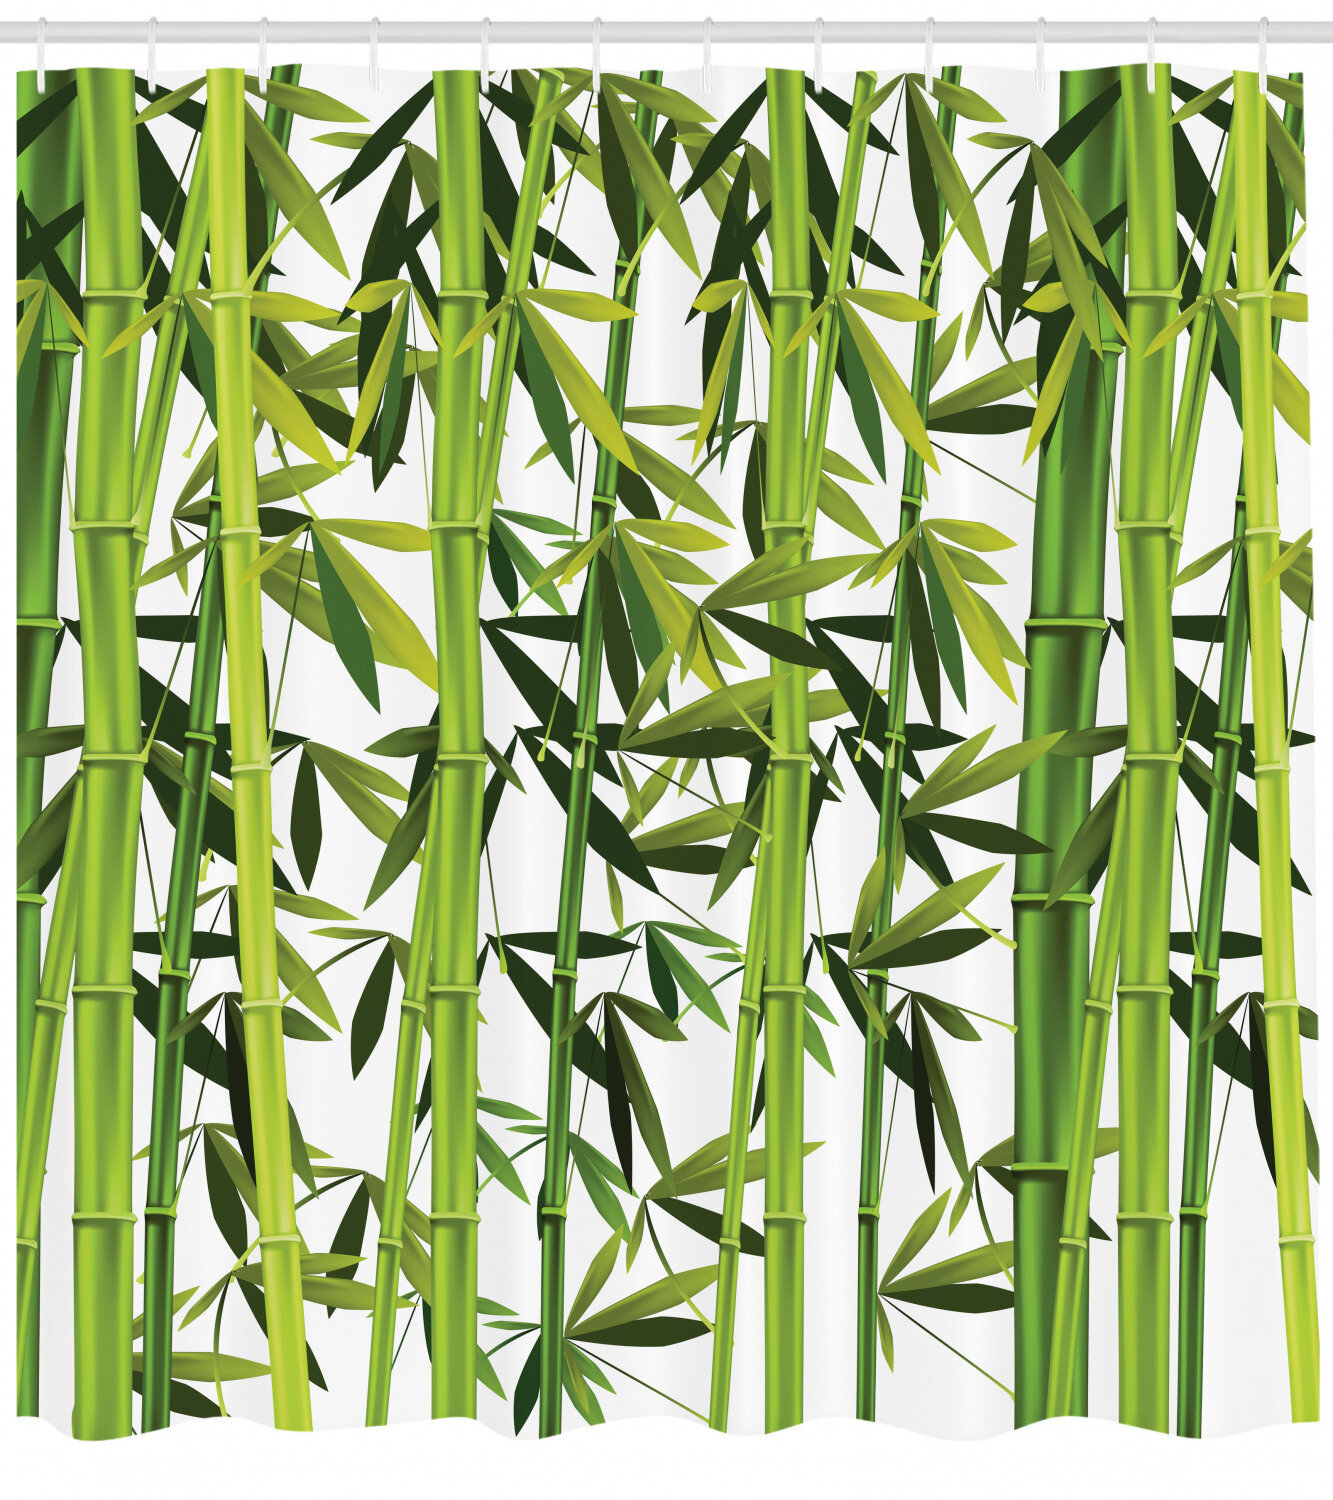 Asian Shower Curtain Bamboo Stems and Blooms Print for Bathroom